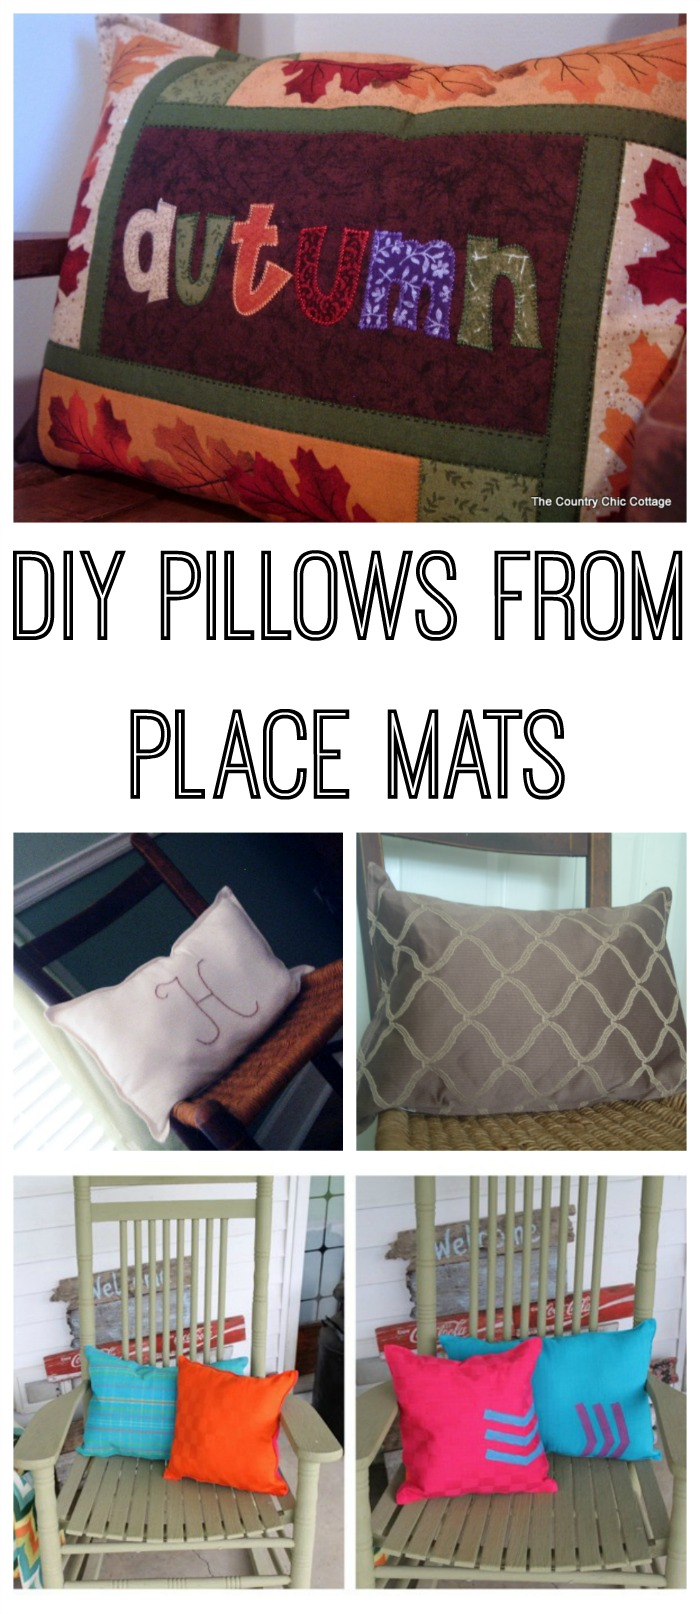 Make DIY pillows from place mats with these instructions!